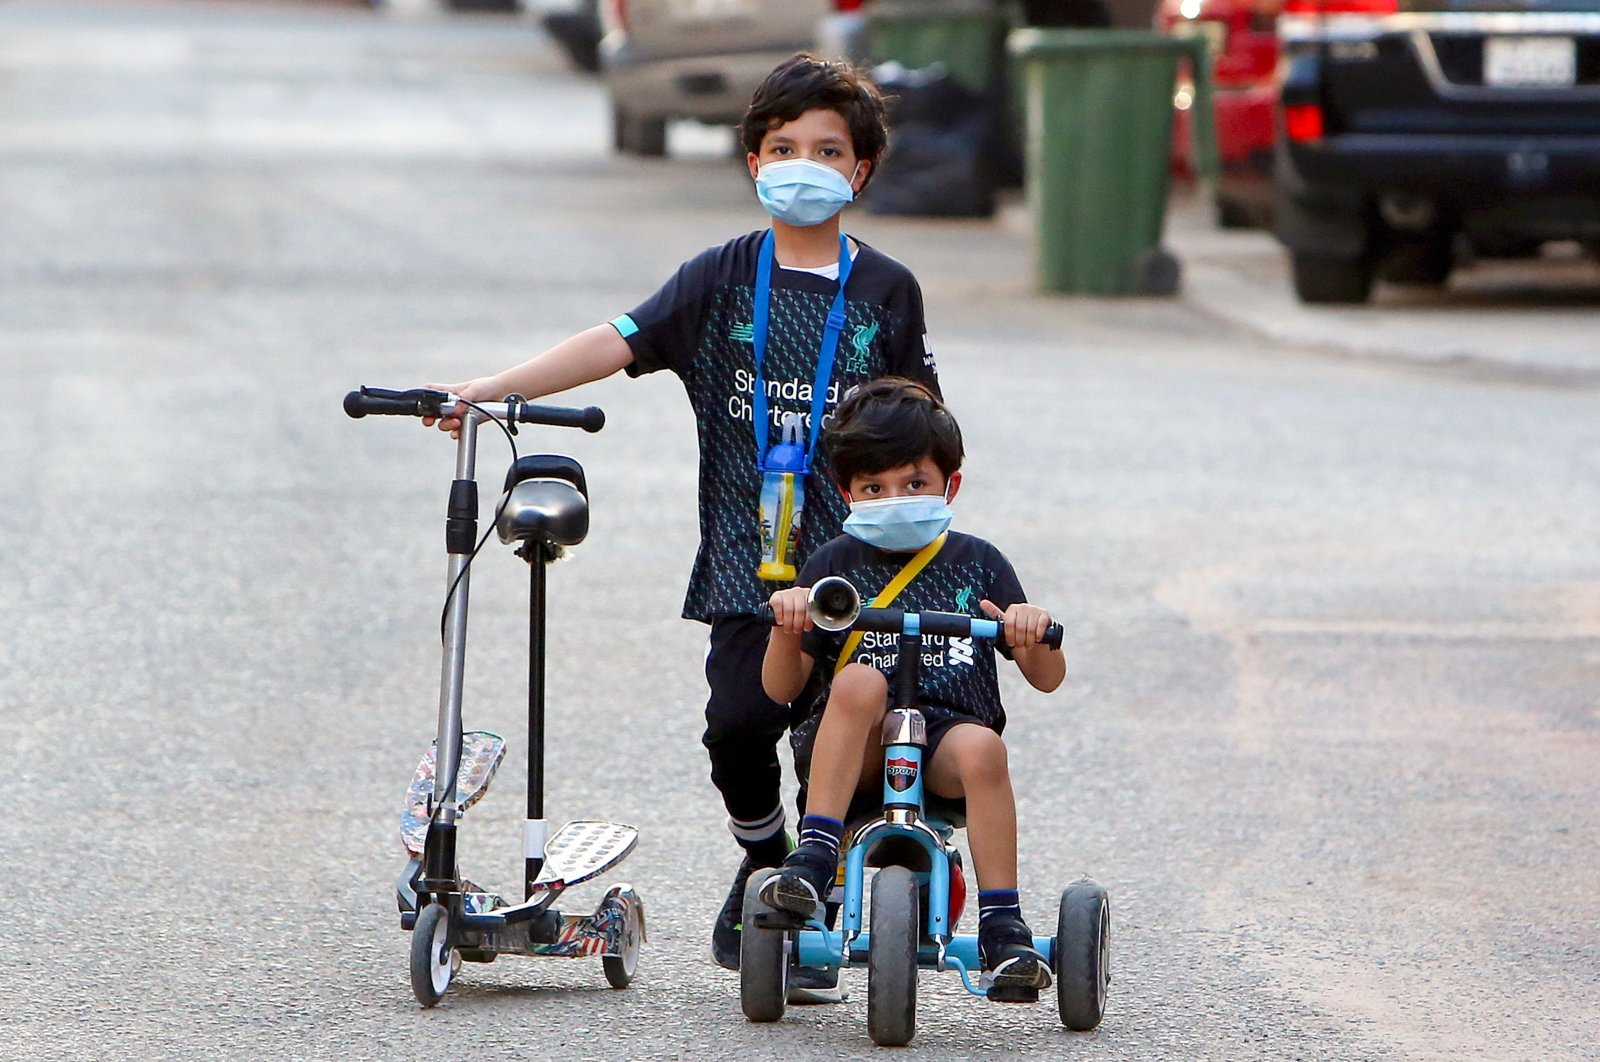 Kuwaiti children, wearing protective facemasks, cycle in a street in the Salwa district of Kuwait City, May 29, 2020. (AFP Photo)